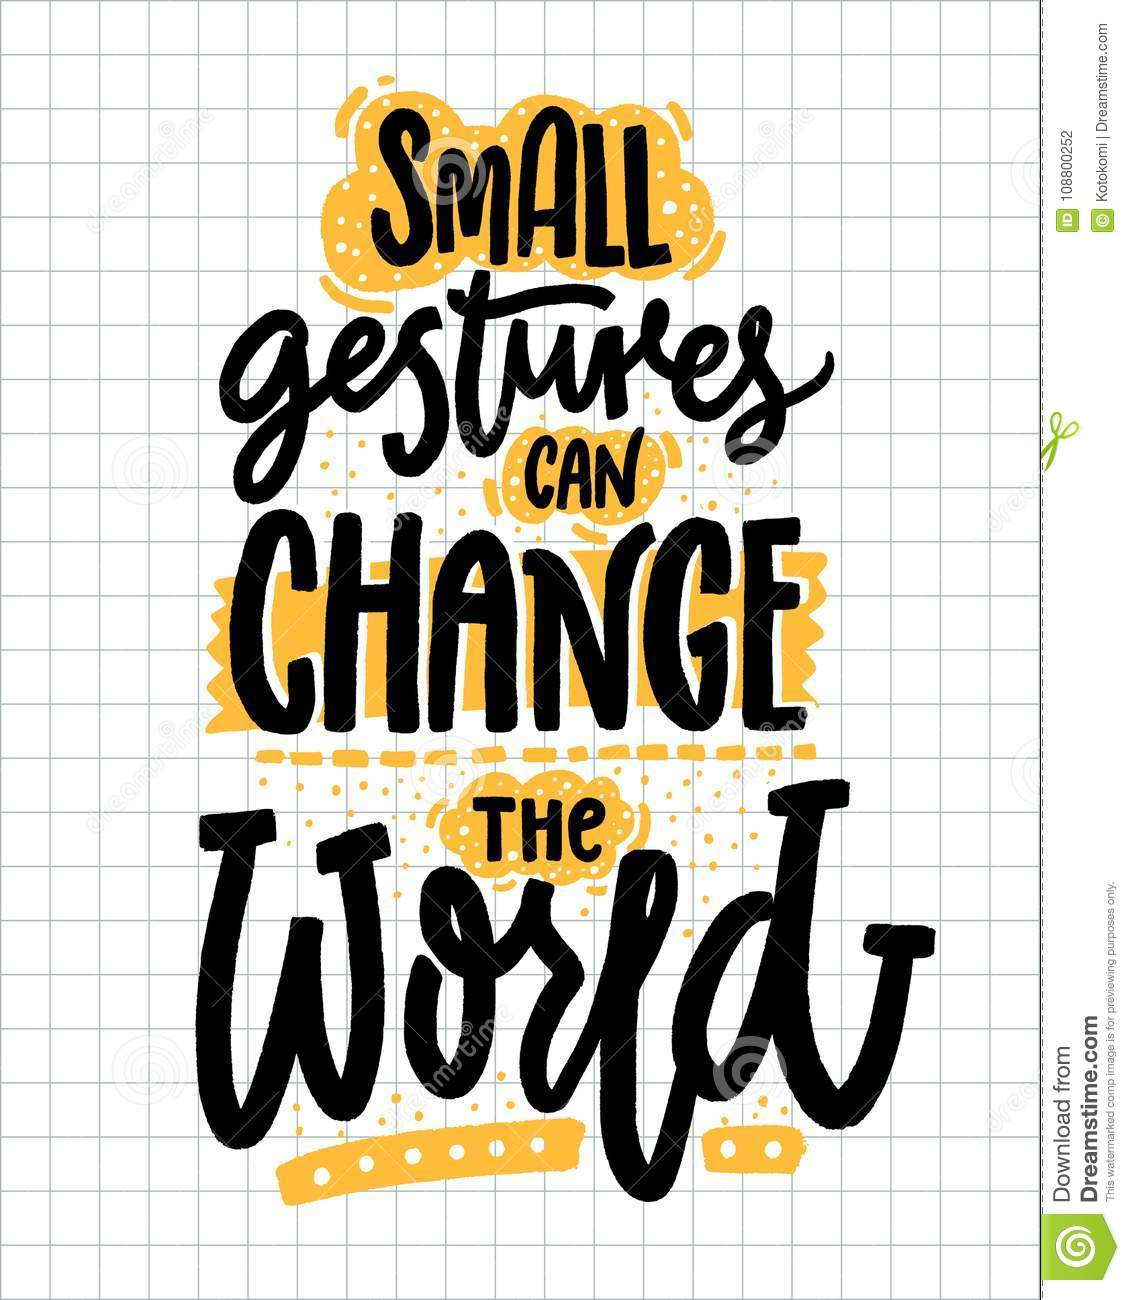 At T Stock Price Quote: Small Gestures Can Change The World. Inspirational Quote